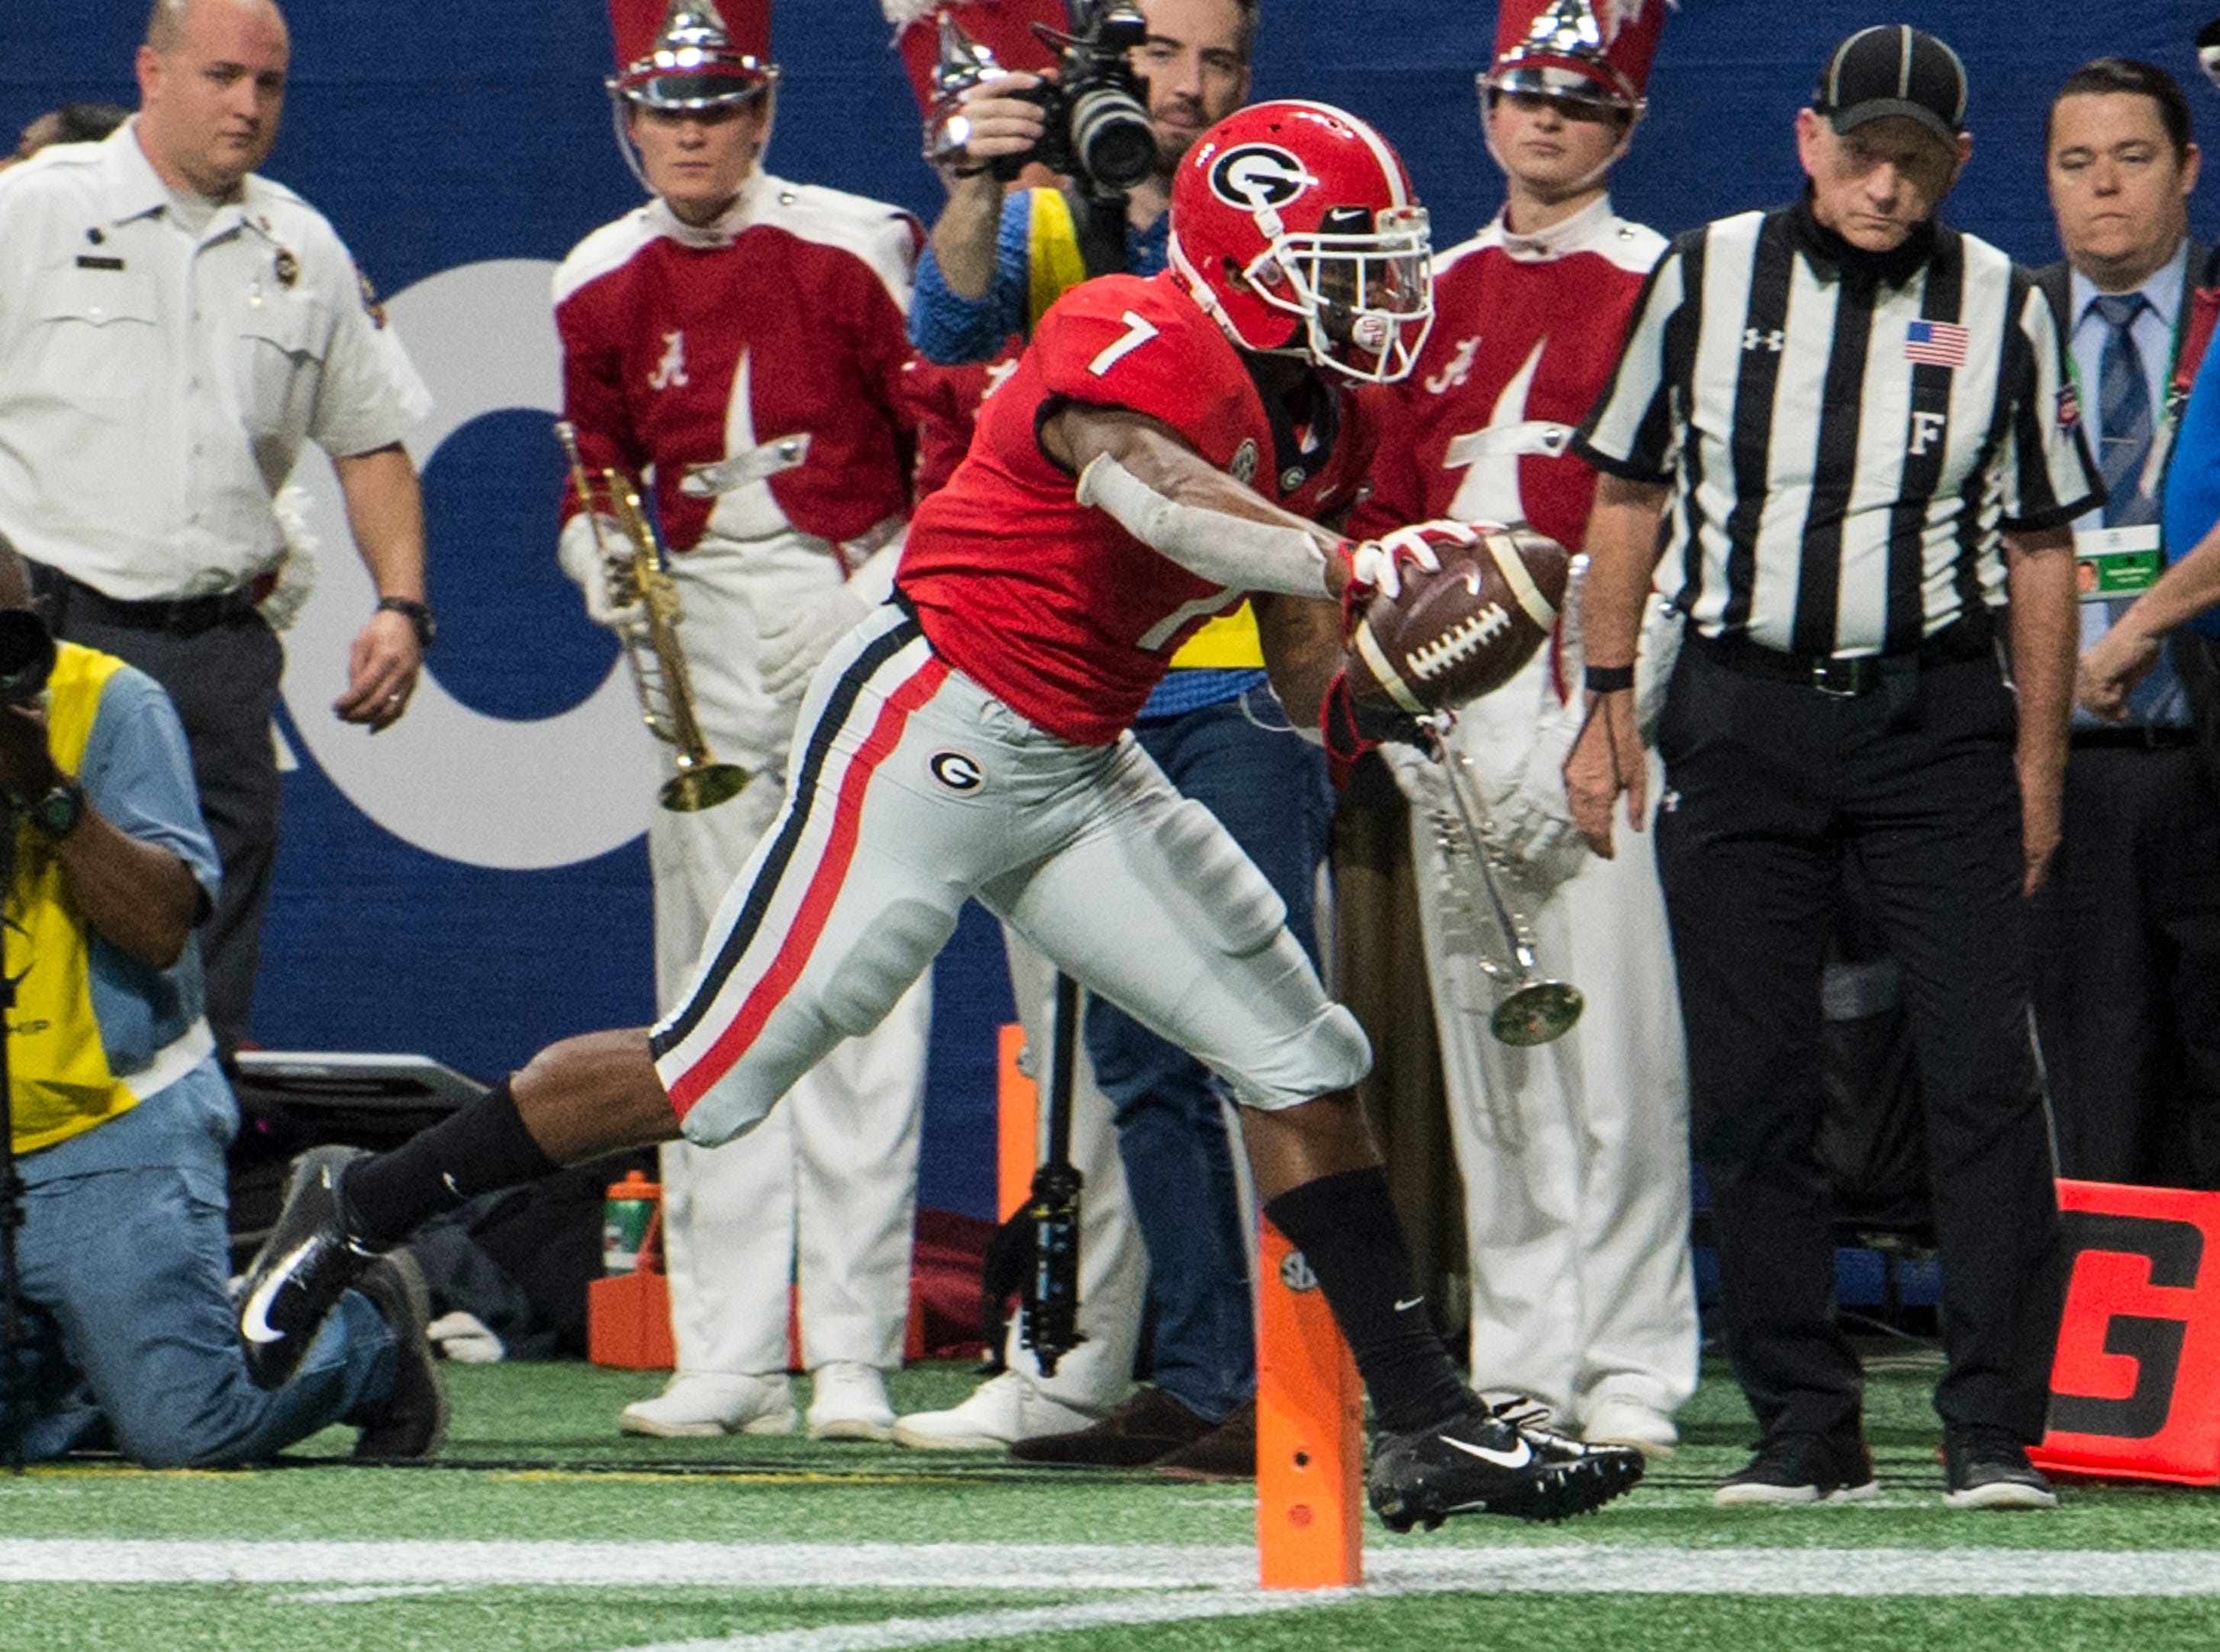 Georgia running back D'Andre Swift (7) runs into the end zone for a touchdown during the SEC Championship game at Mercedes-Benz Stadium in Atlanta, Ga., on Saturday Dec. 1, 2018. Georgia leads Alabama 21-14 at halftime.